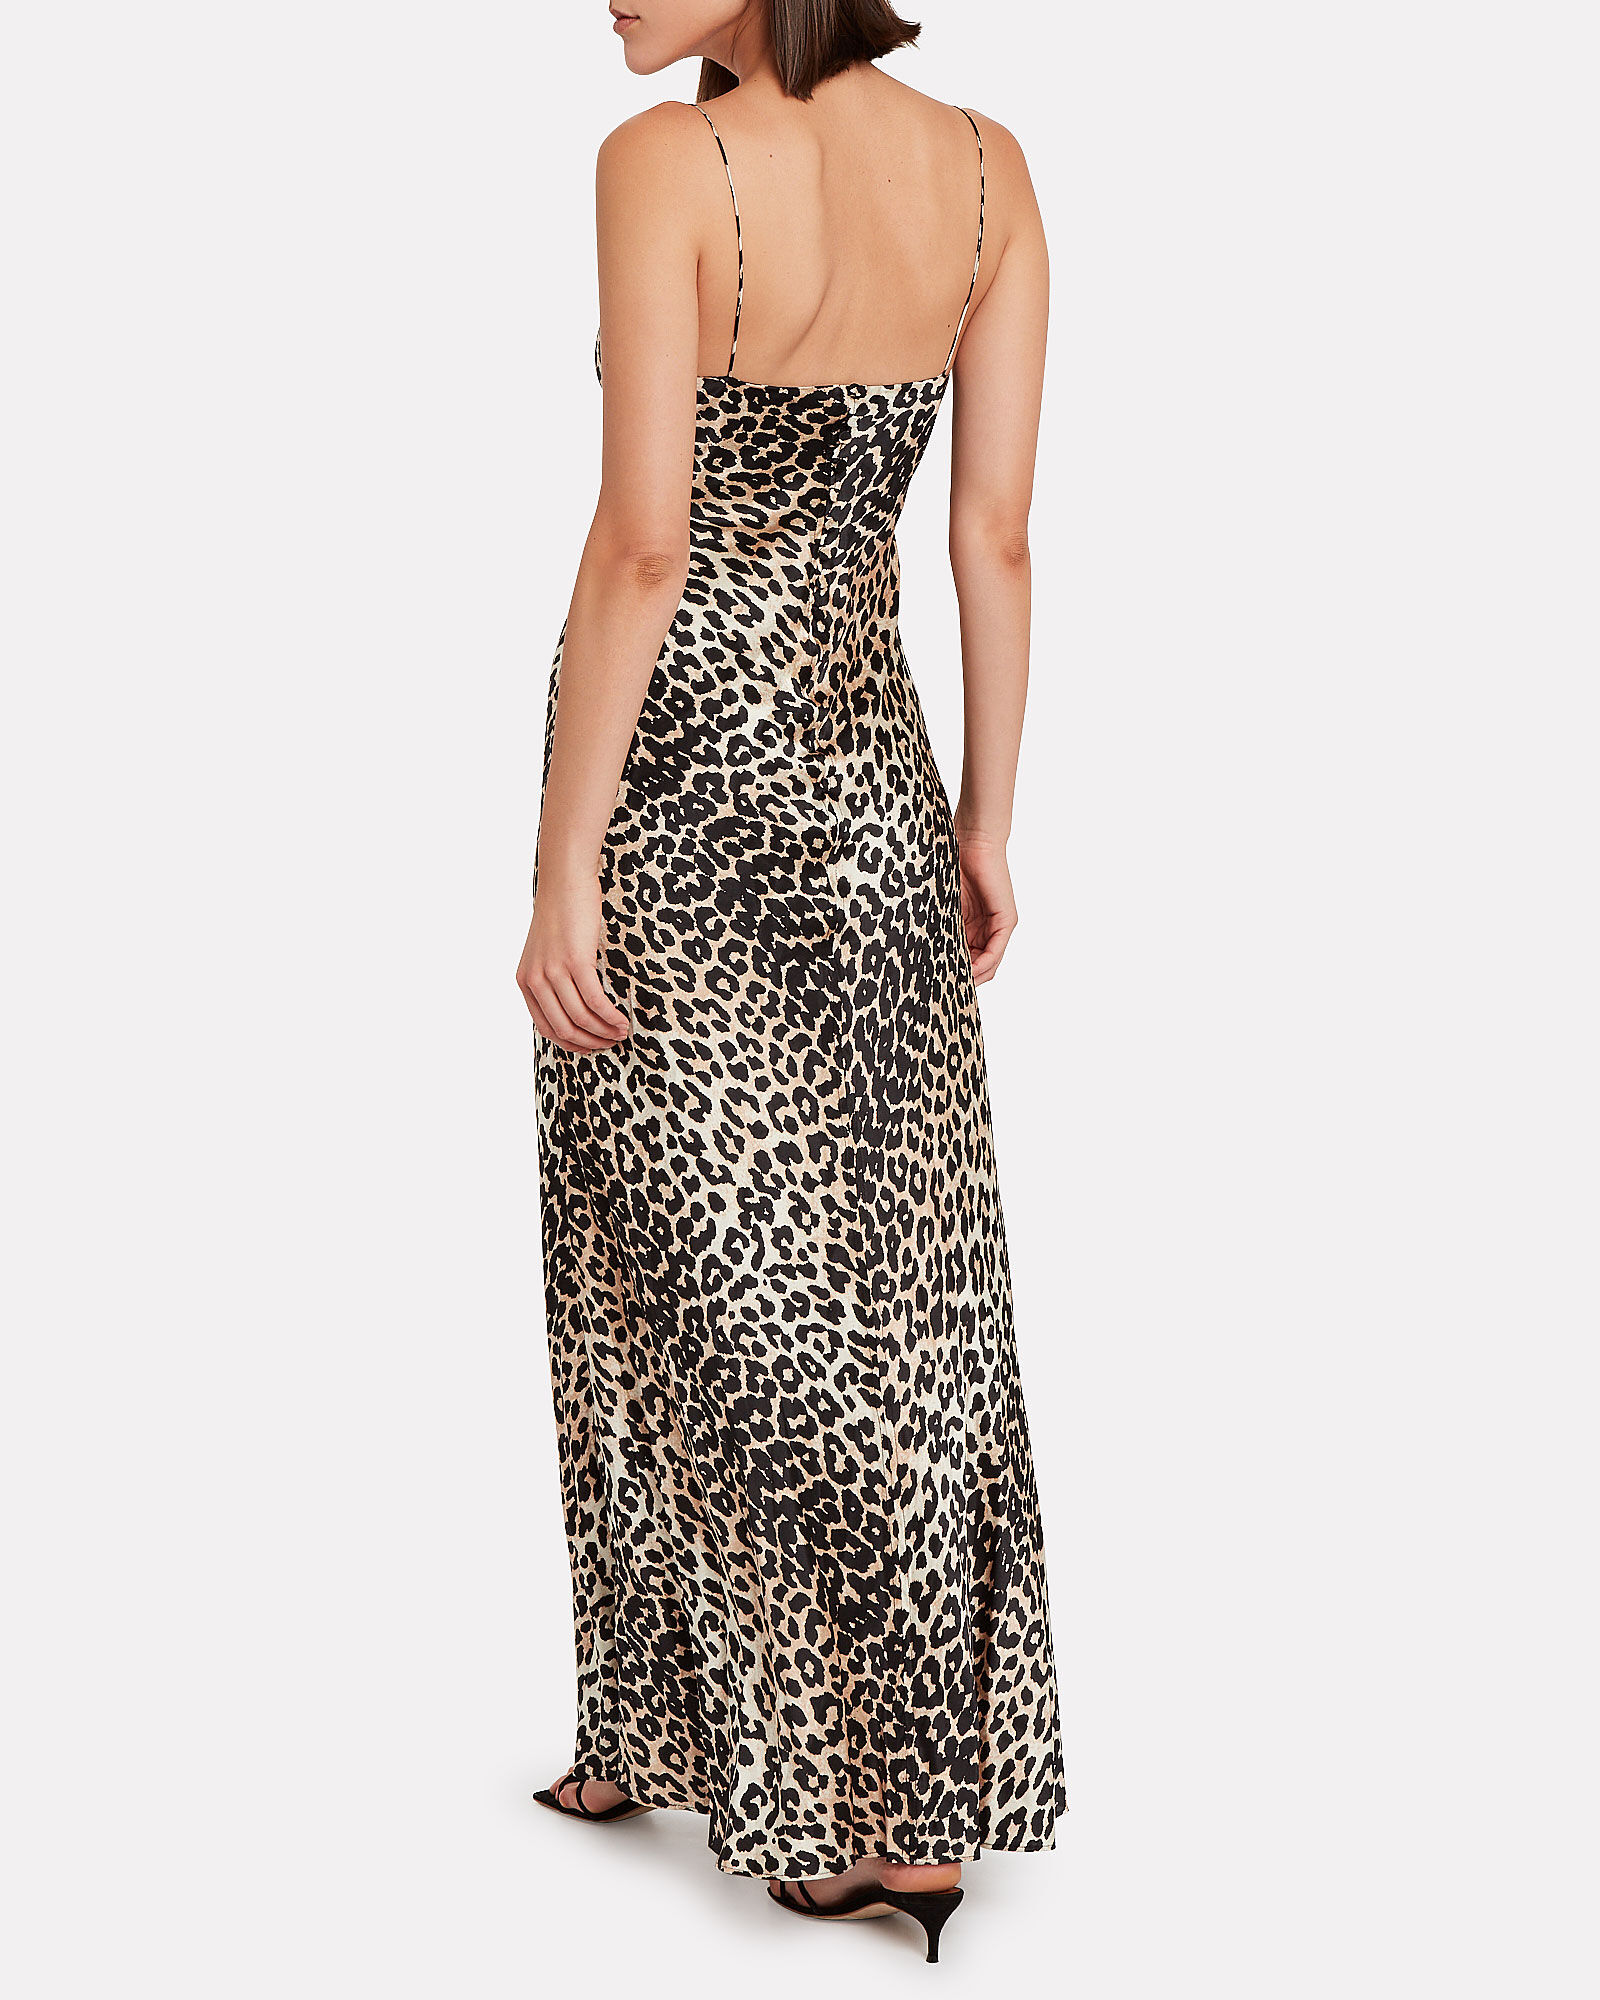 Leopard Print Silk Maxi Dress, BROWN/LEOPARD, hi-res